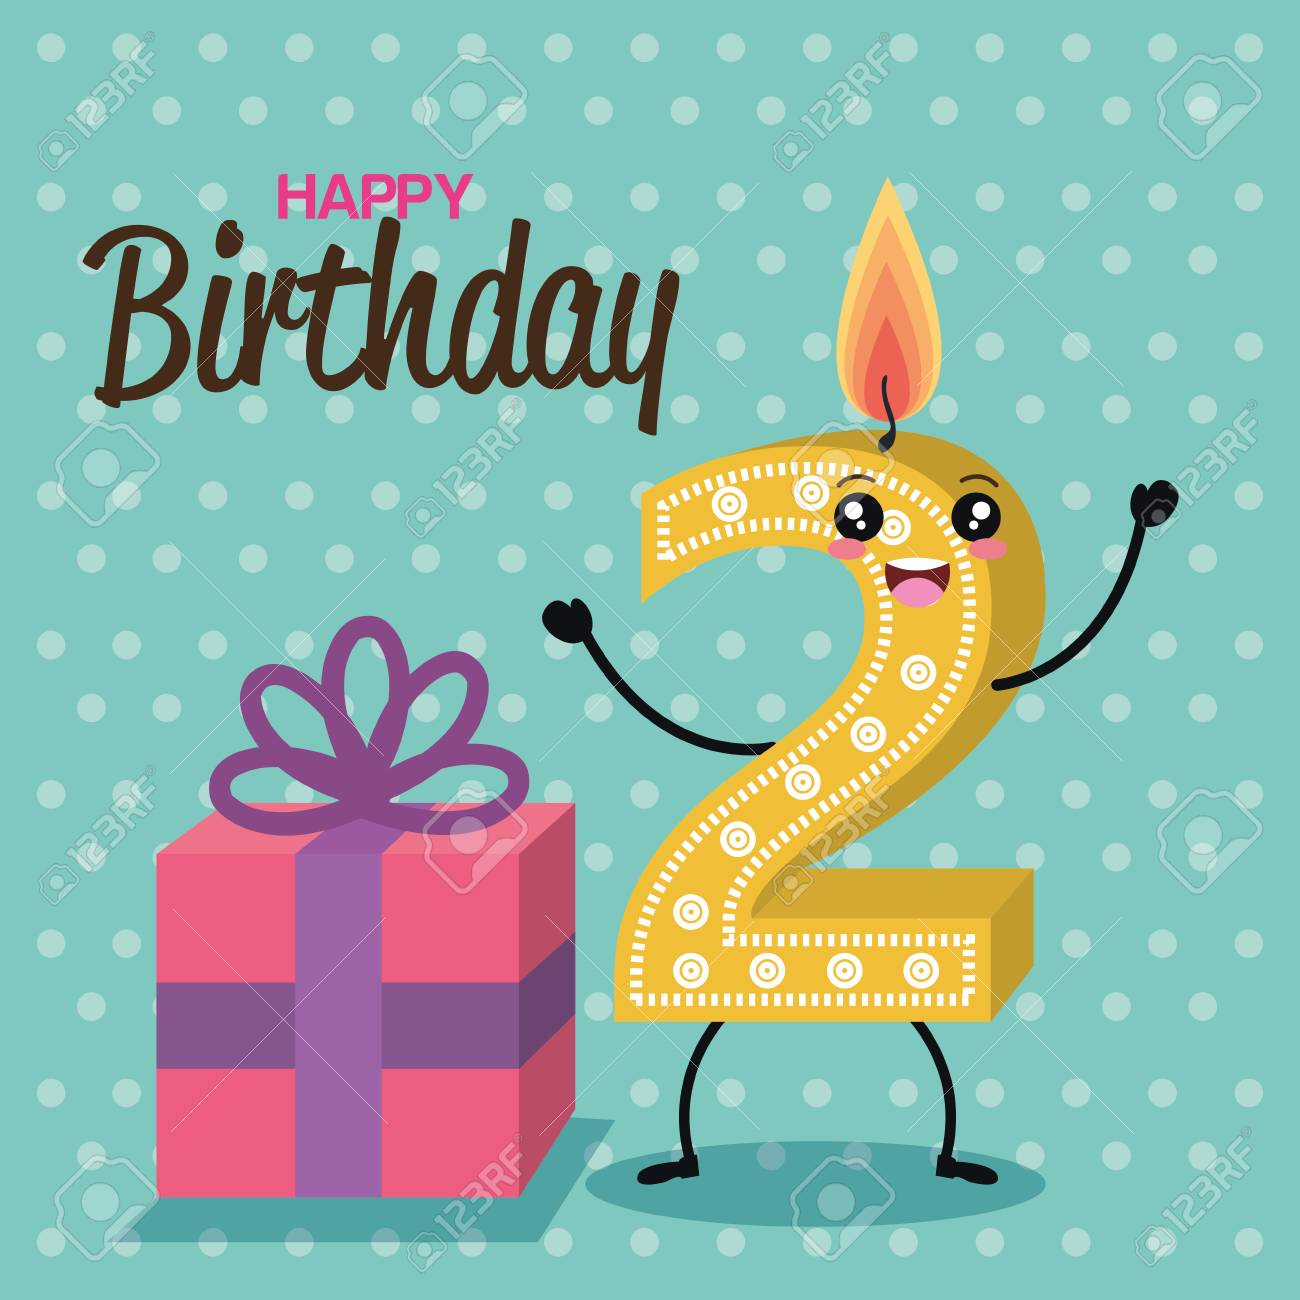 Happy Birthday Candles Cute Numbers Vector Illustration Design Stock